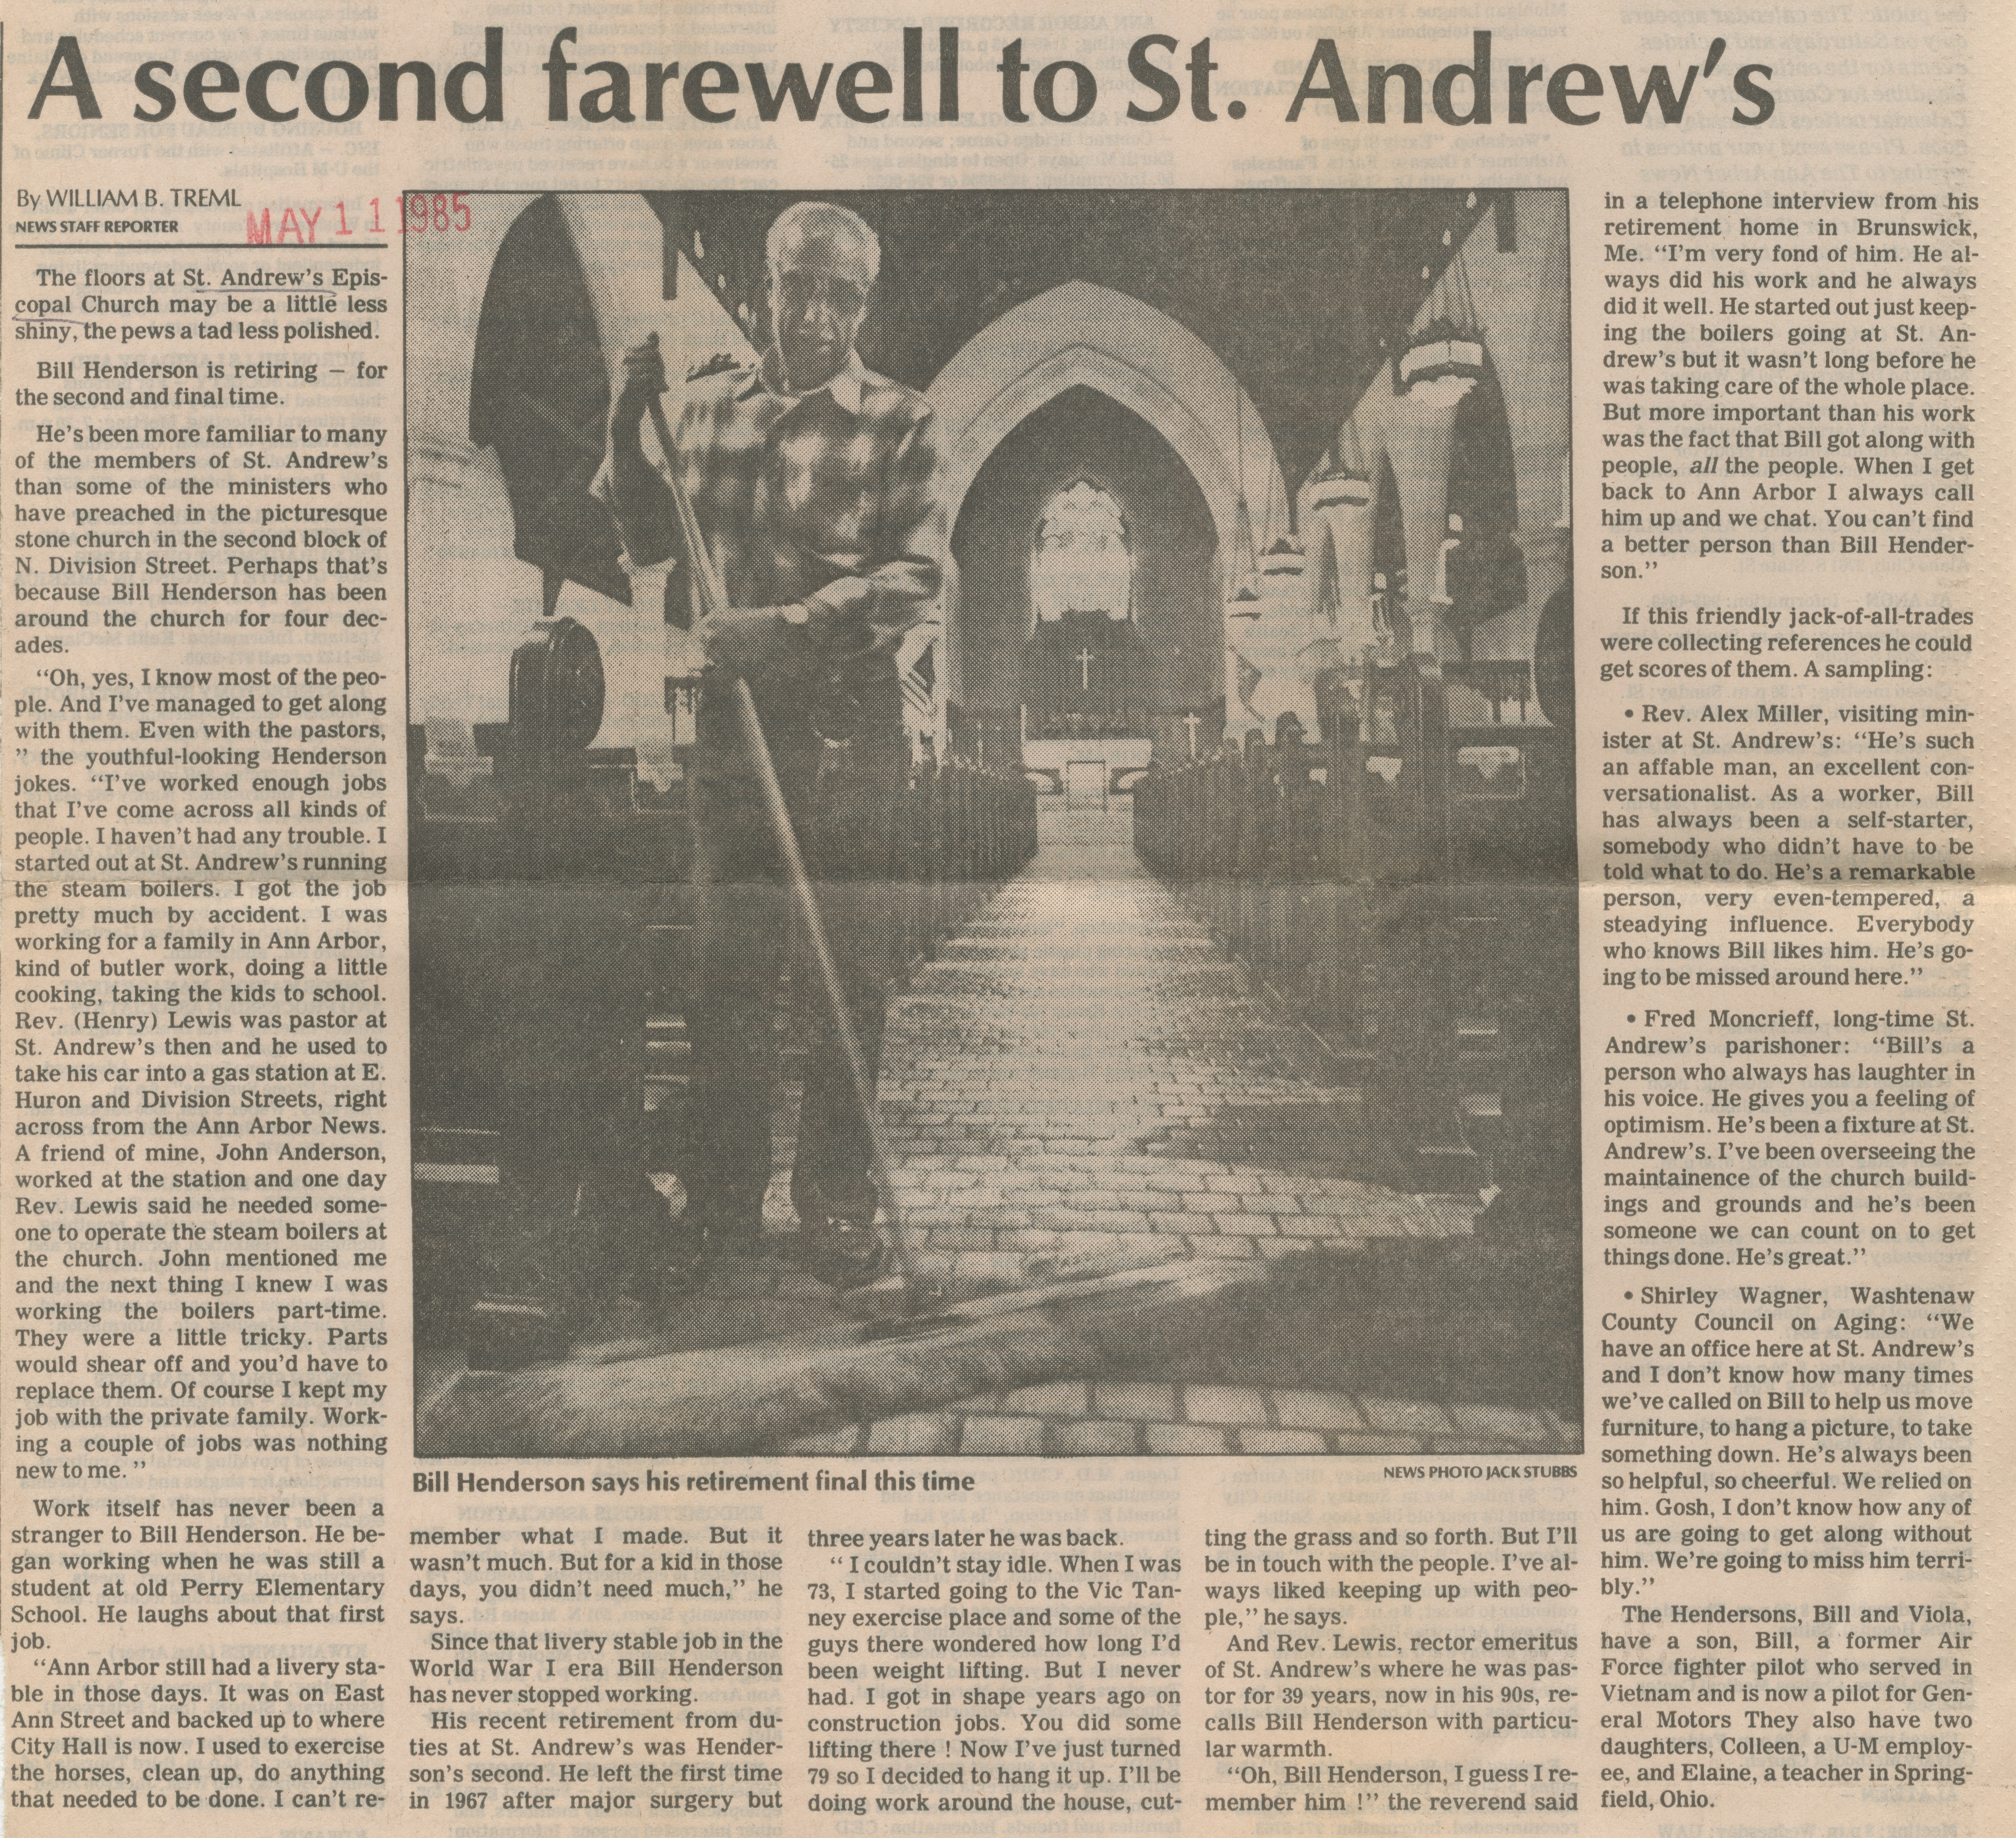 A Second Farewell To St. Andrew's image